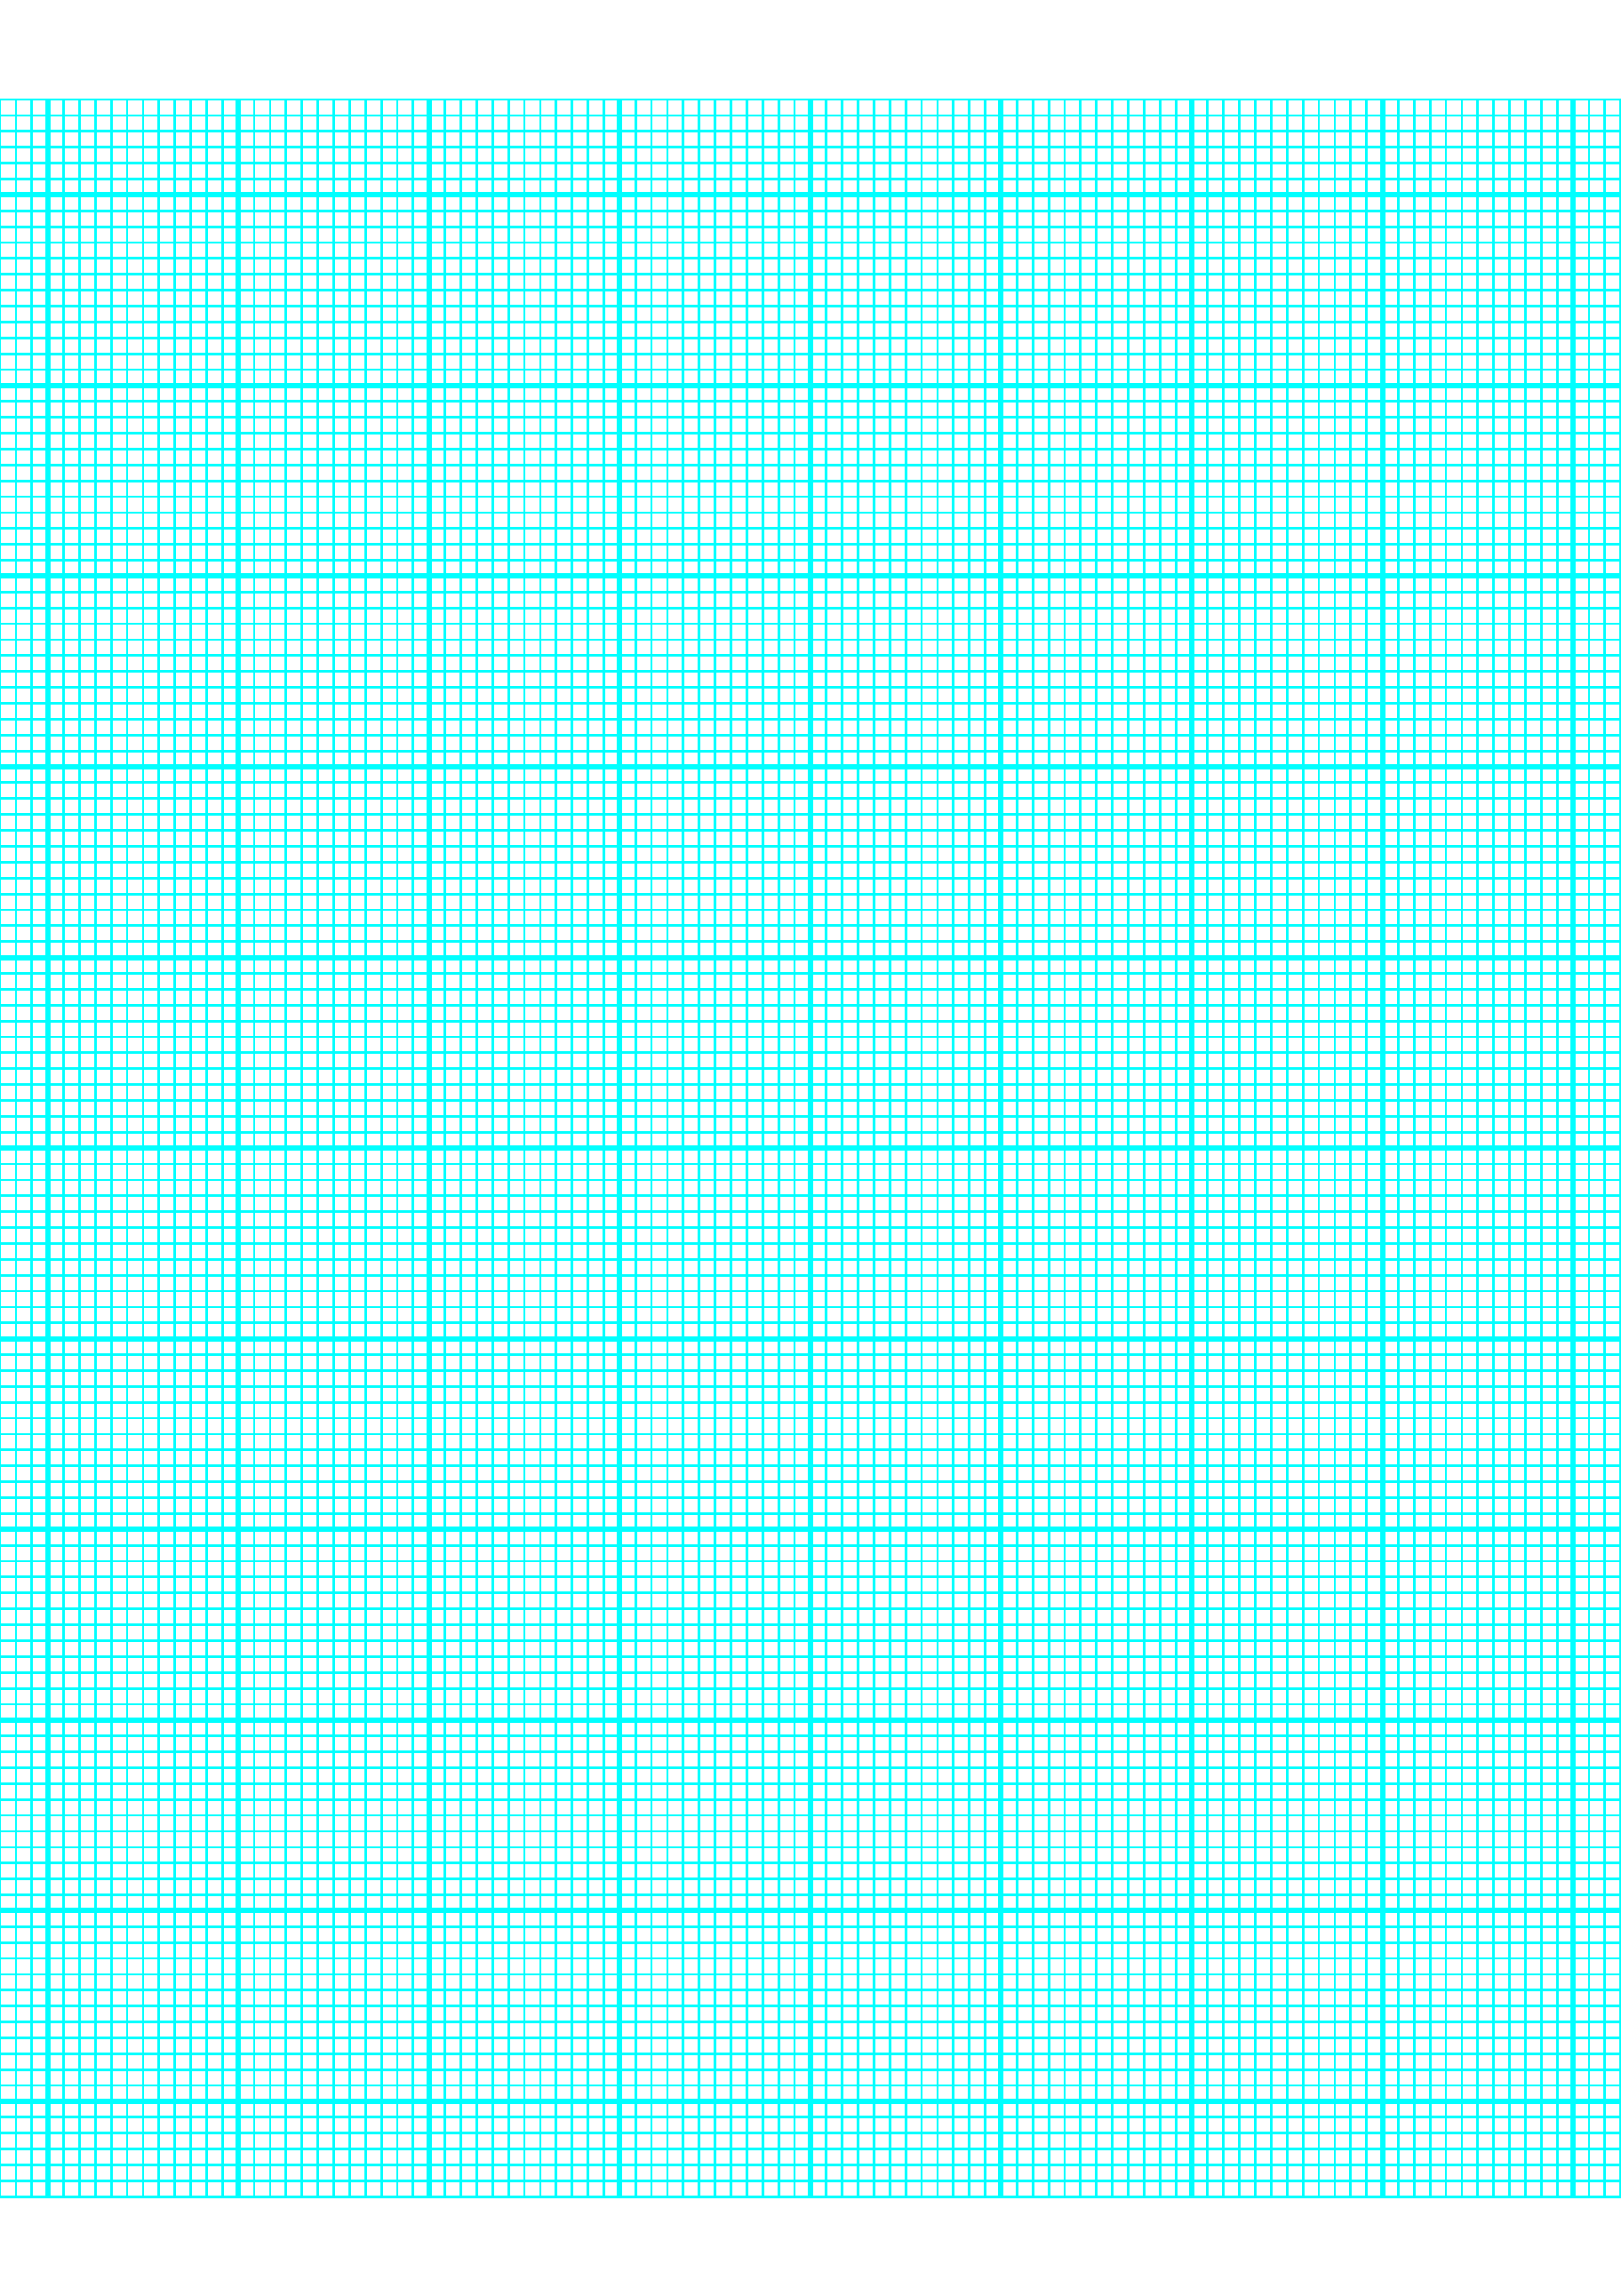 12 Lines Per Inch Graph Paper On Letter Sized Paper Heavy Free Download